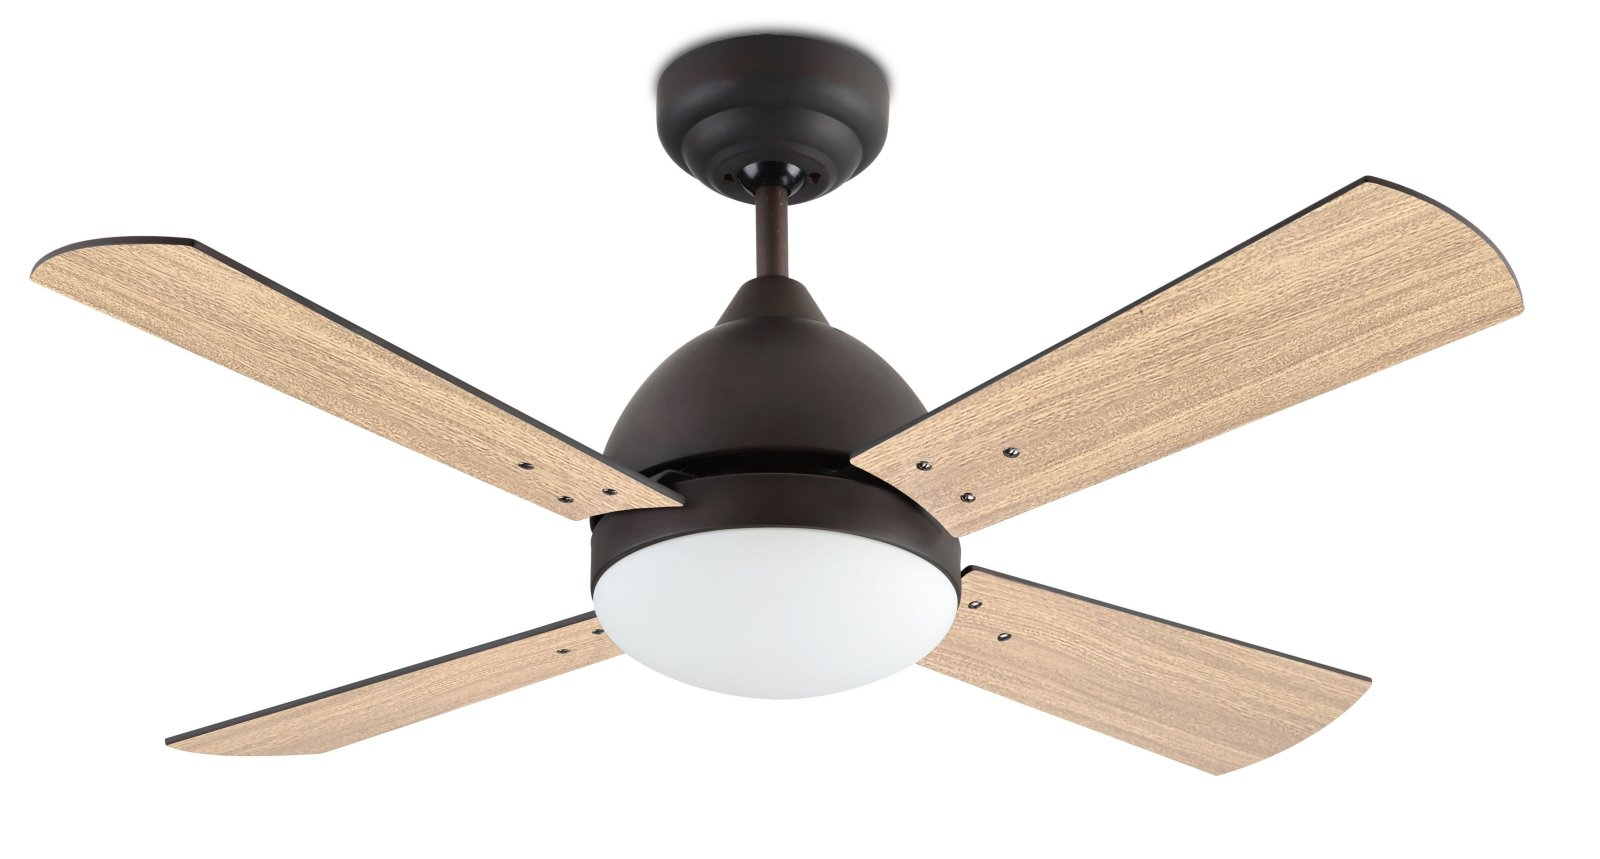 Large Ceiling Fan Complete With Light D1066mm